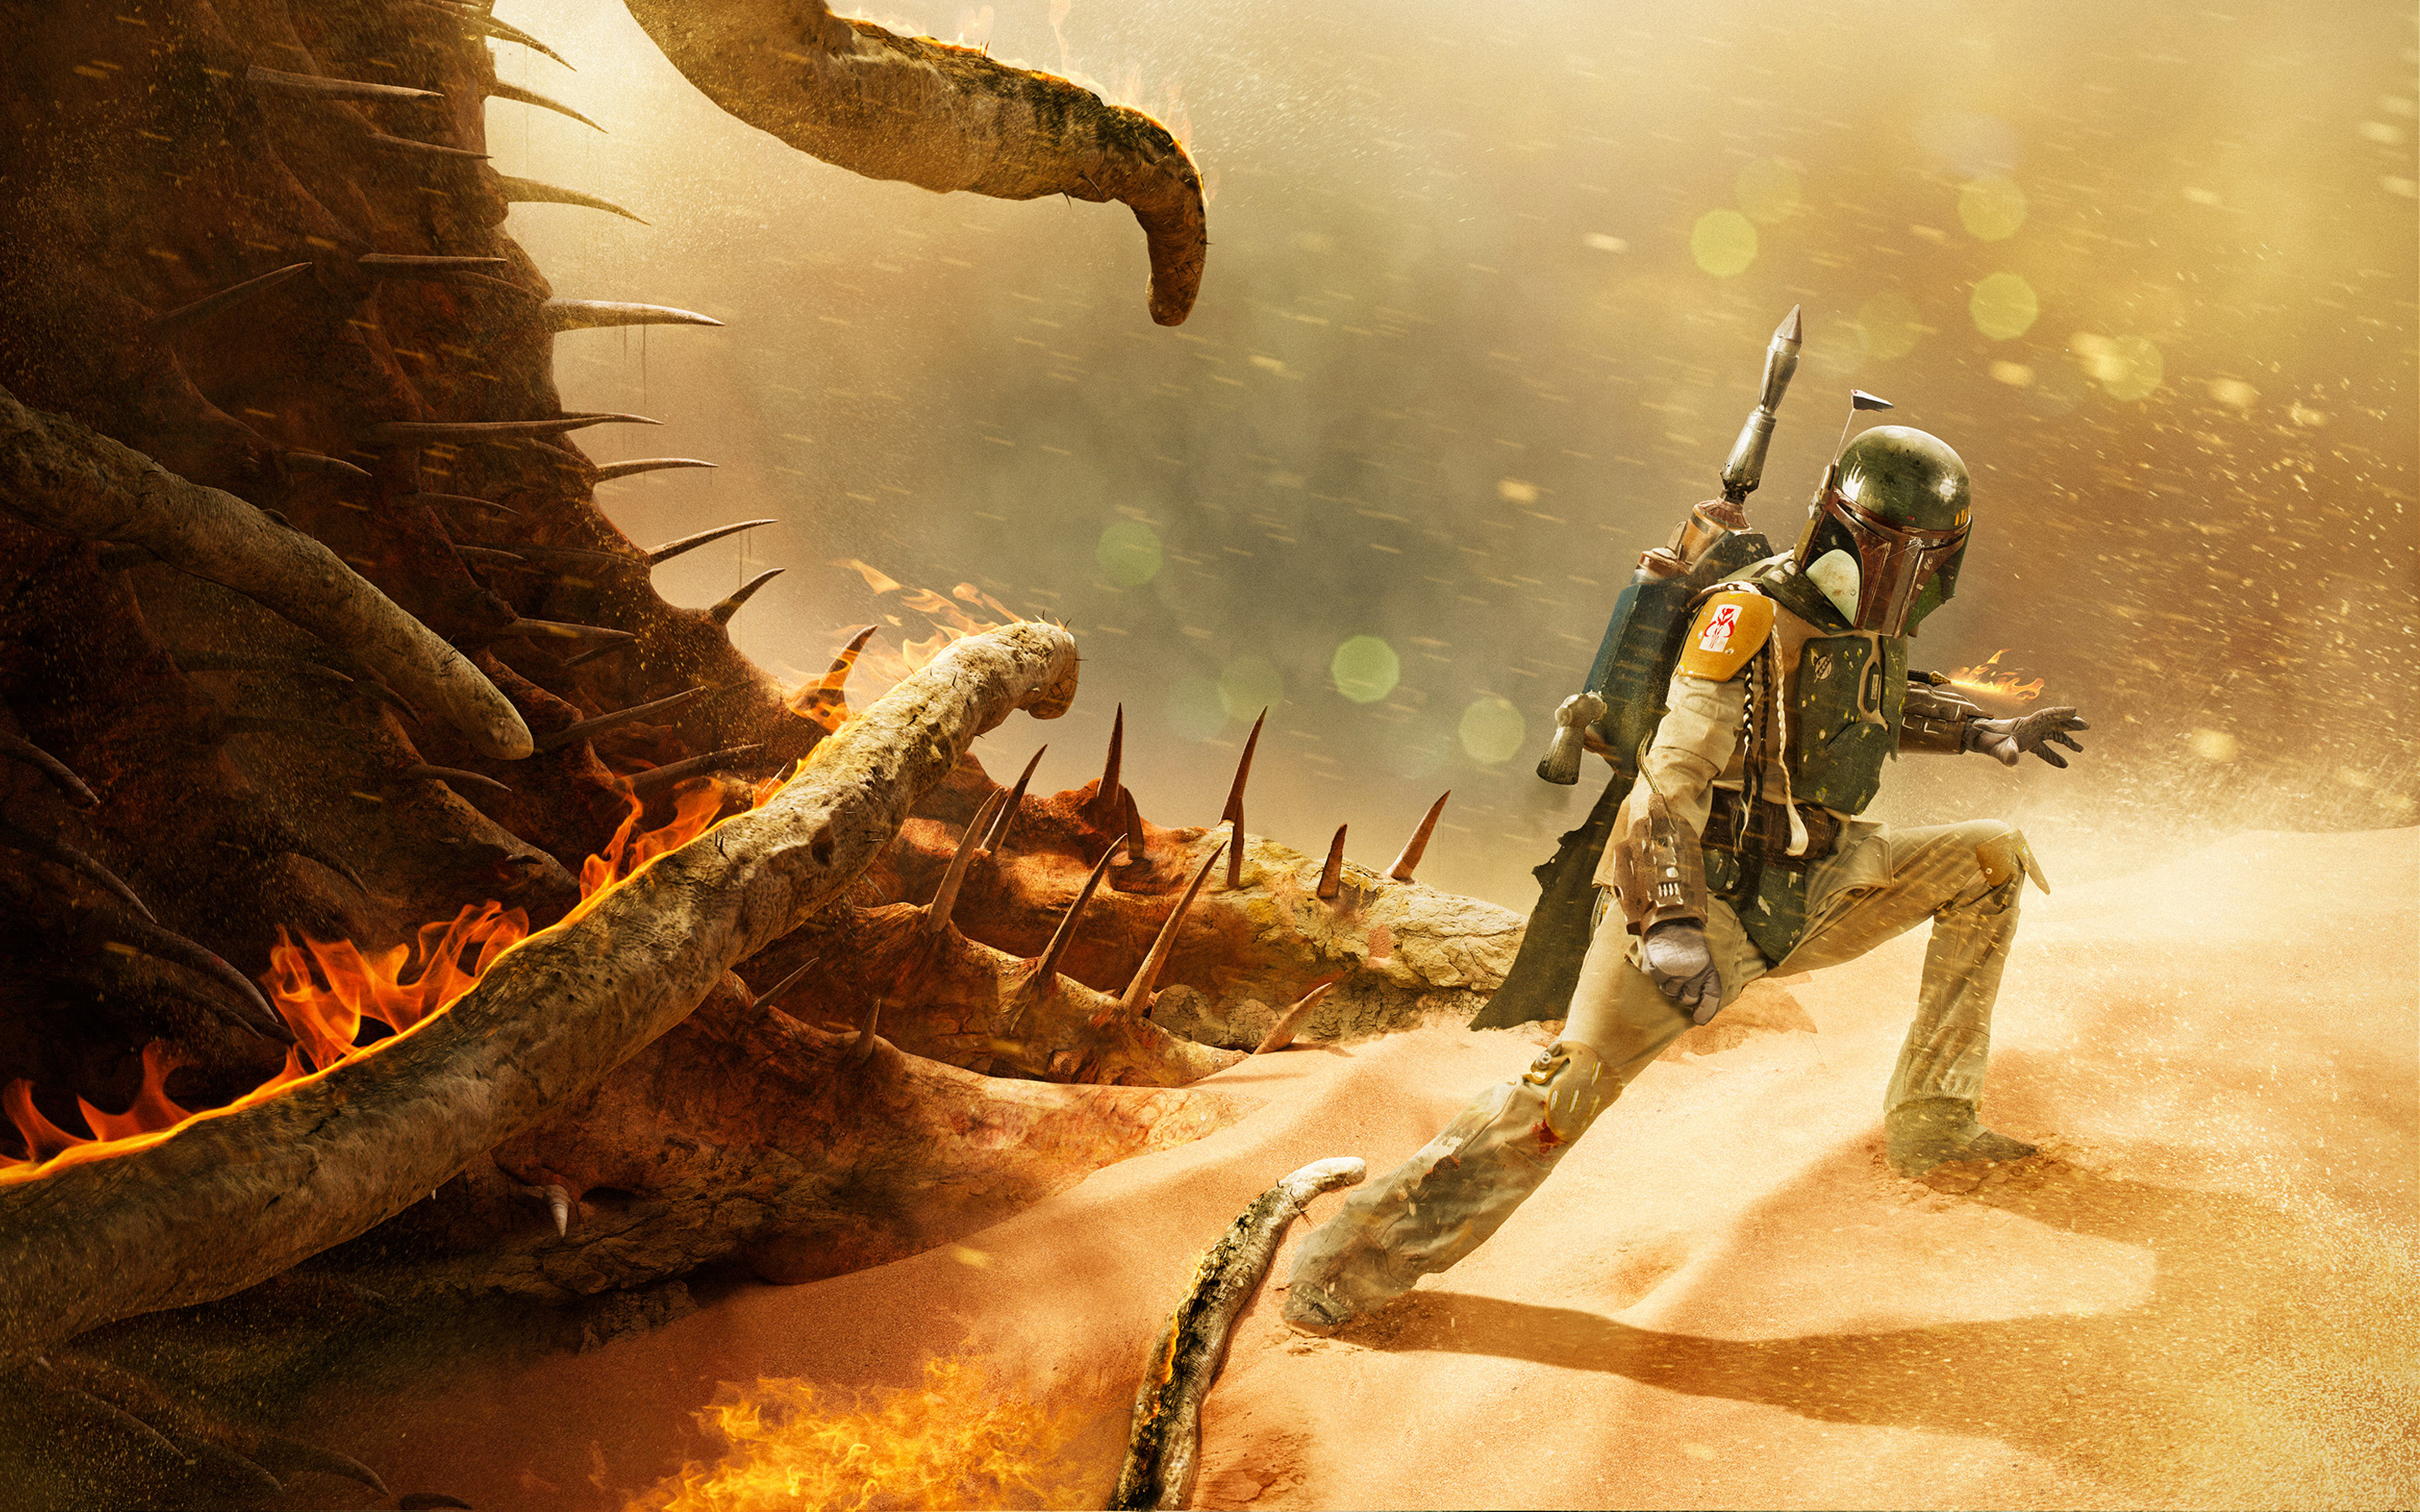 Boba Fett Return of the Jedi Artwork wallpaper